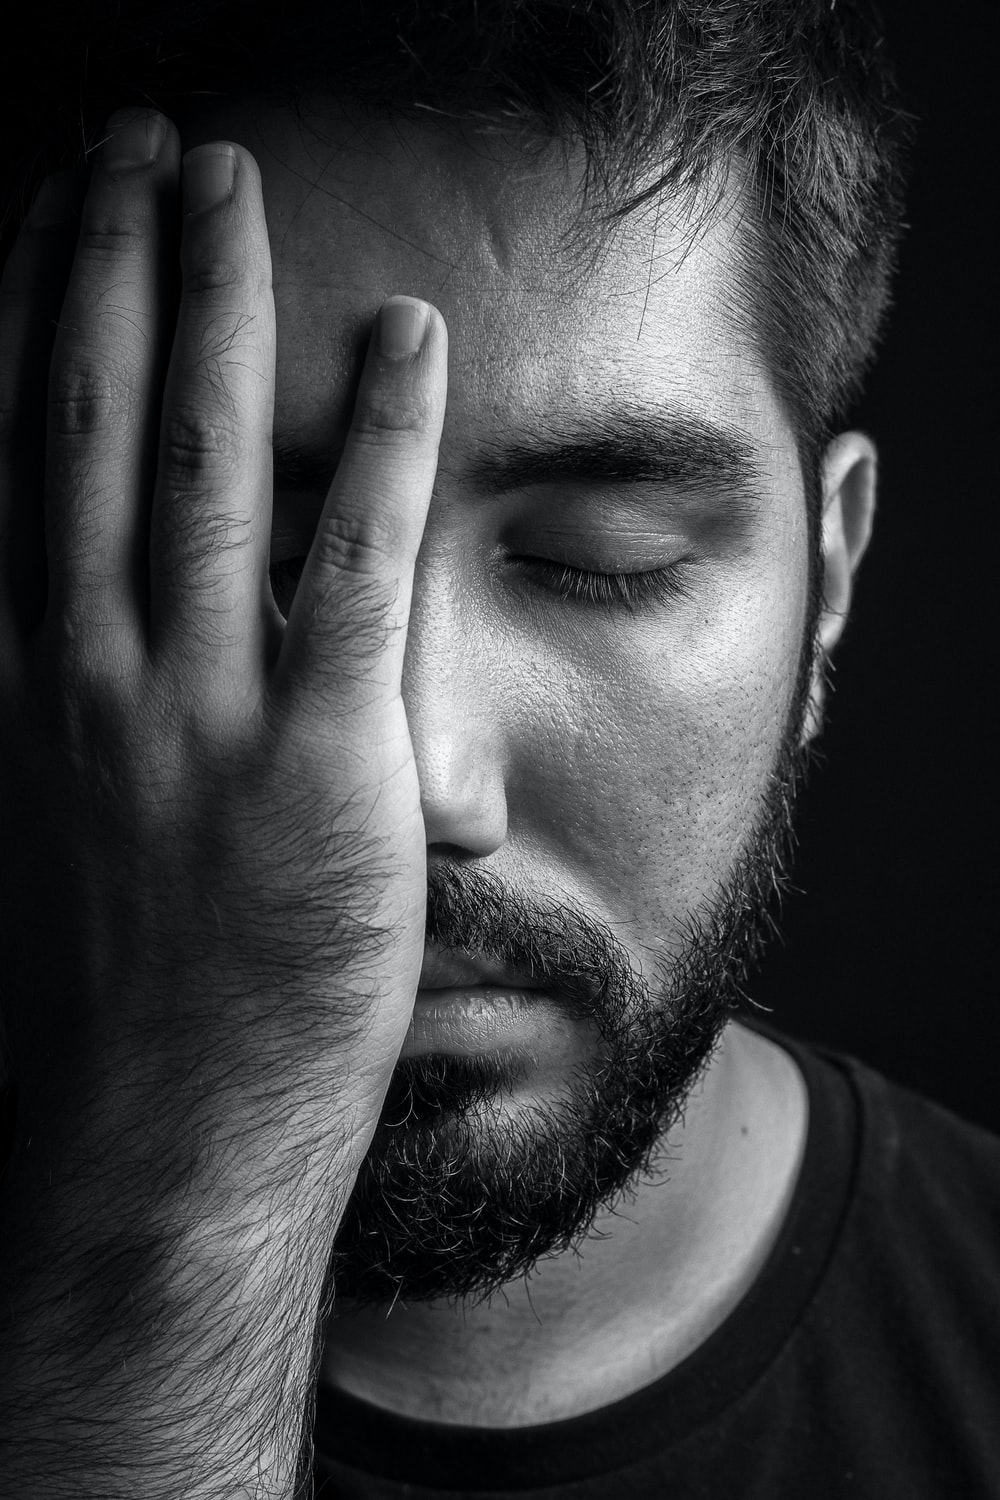 grayscale photo of man covering his face